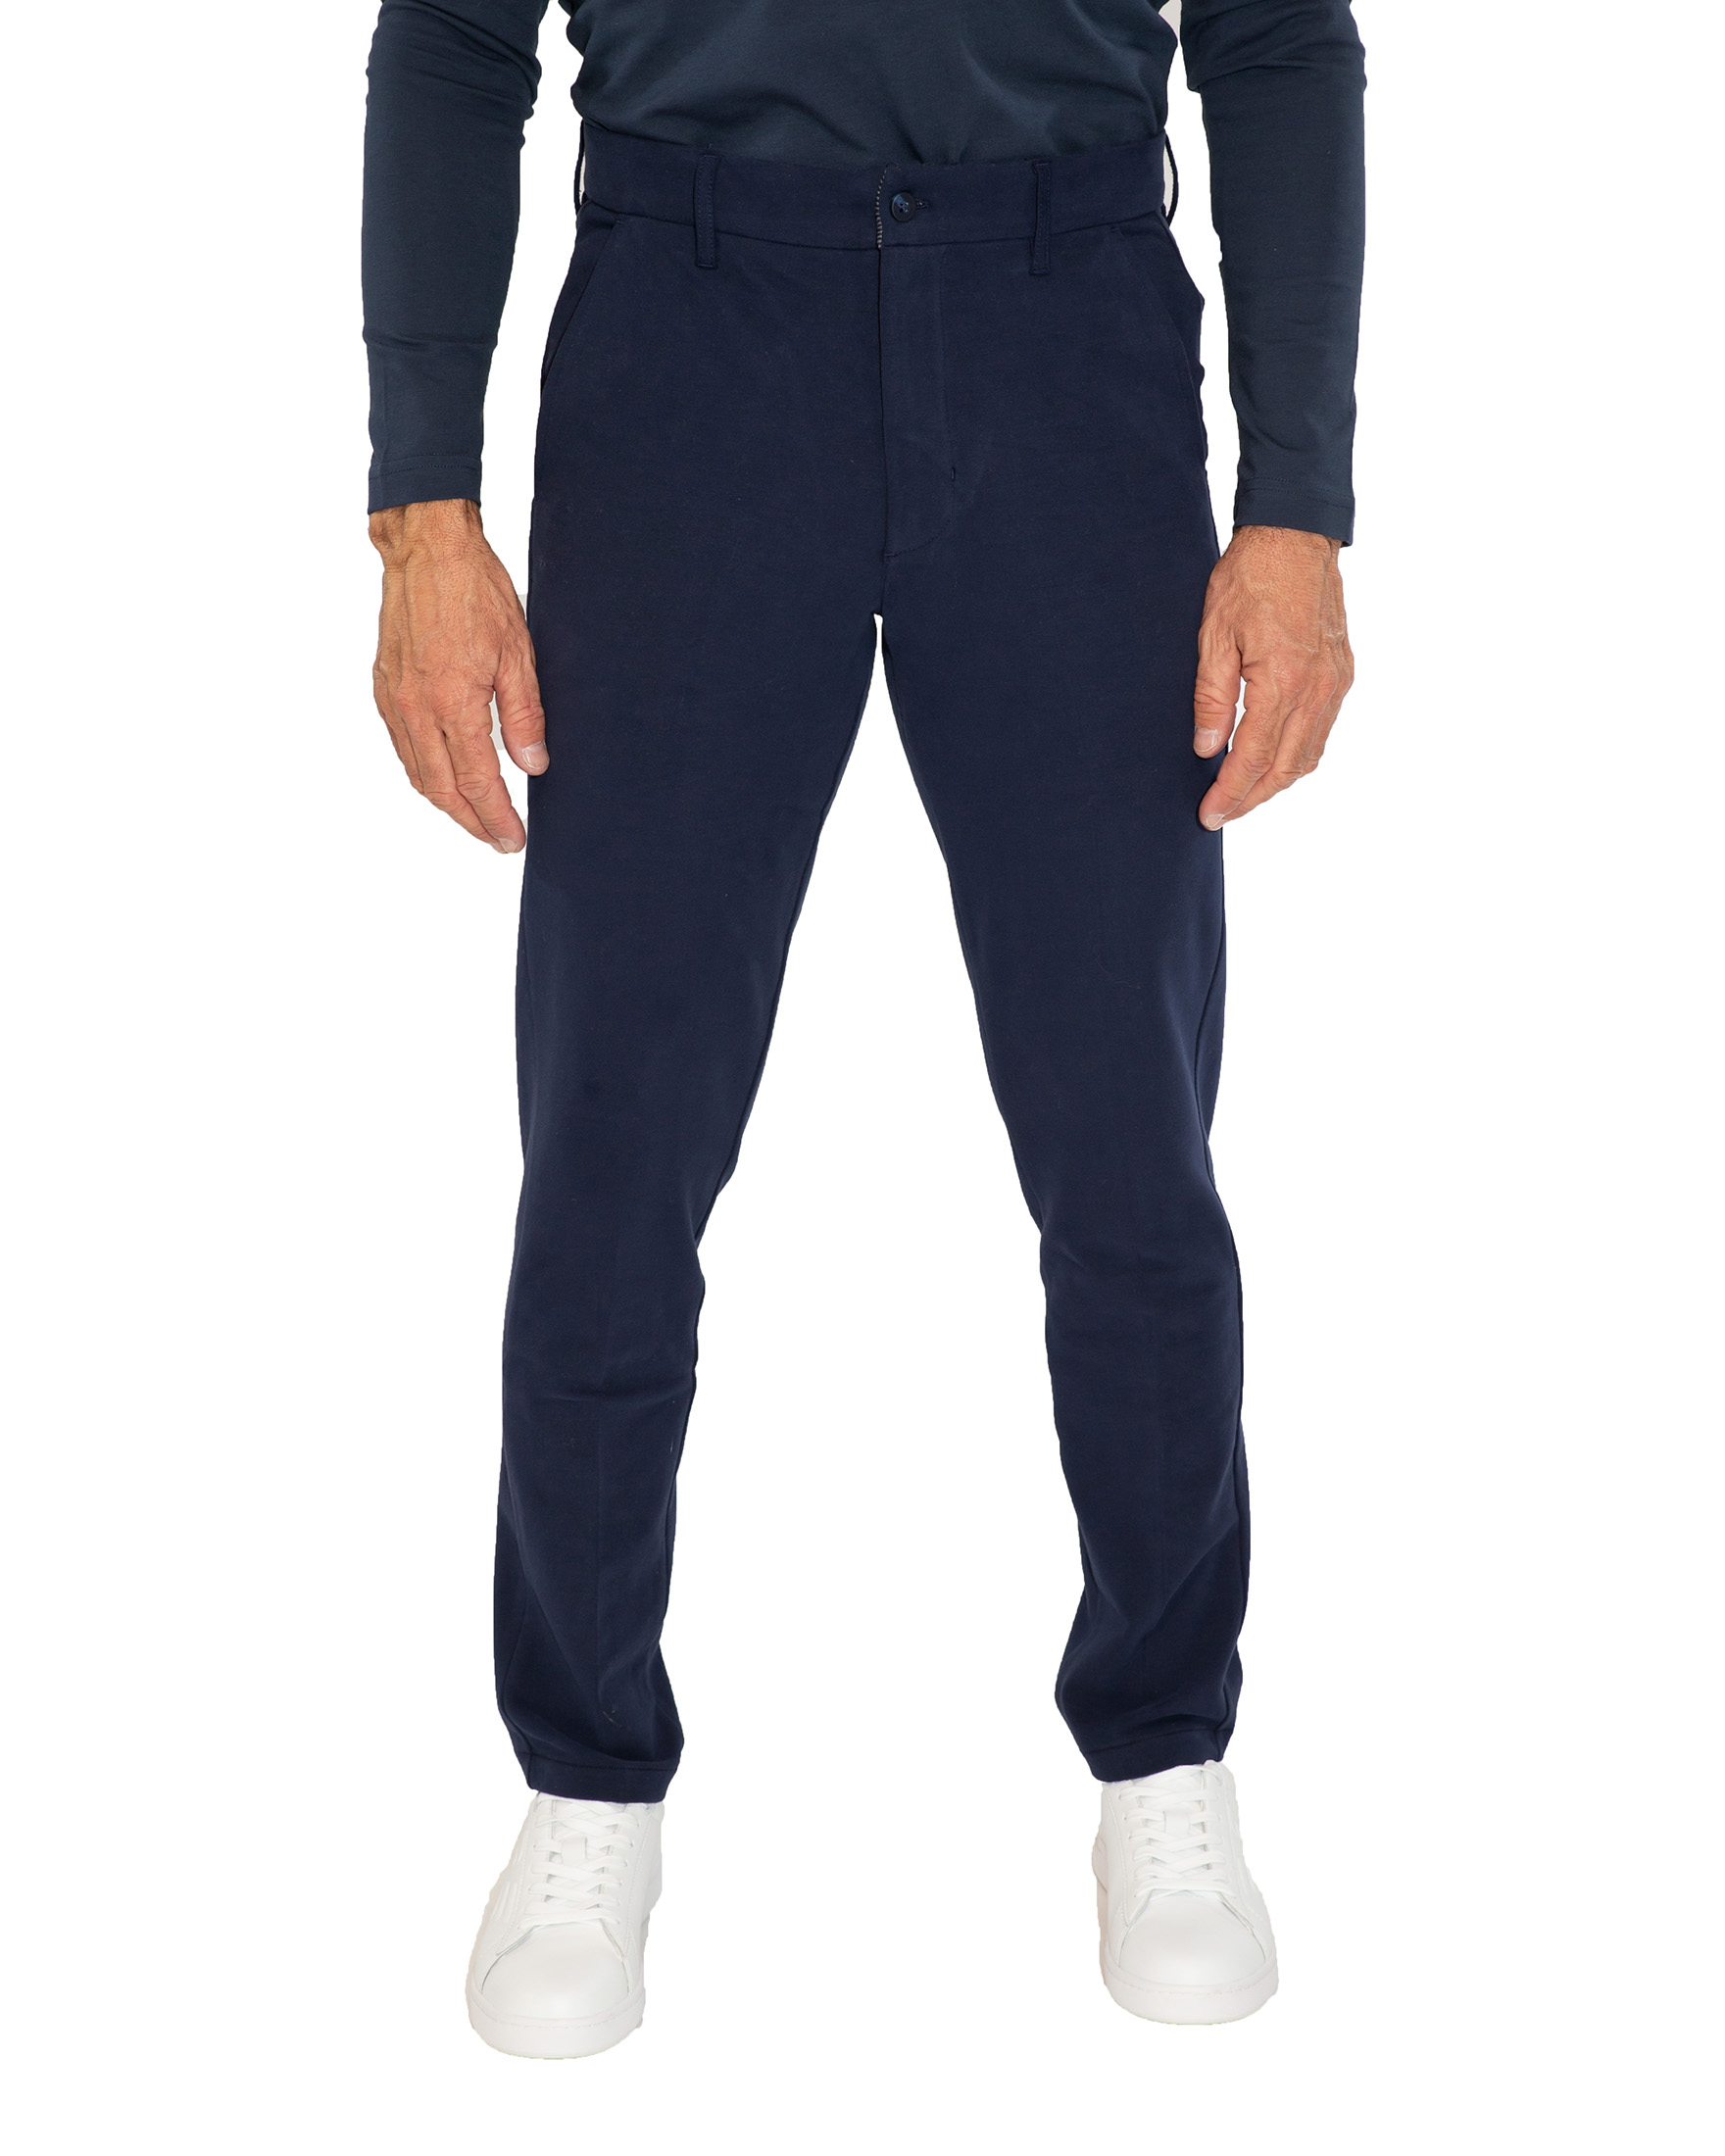 NUMBER BLUE PANTALONE CINOS IN JERSEY